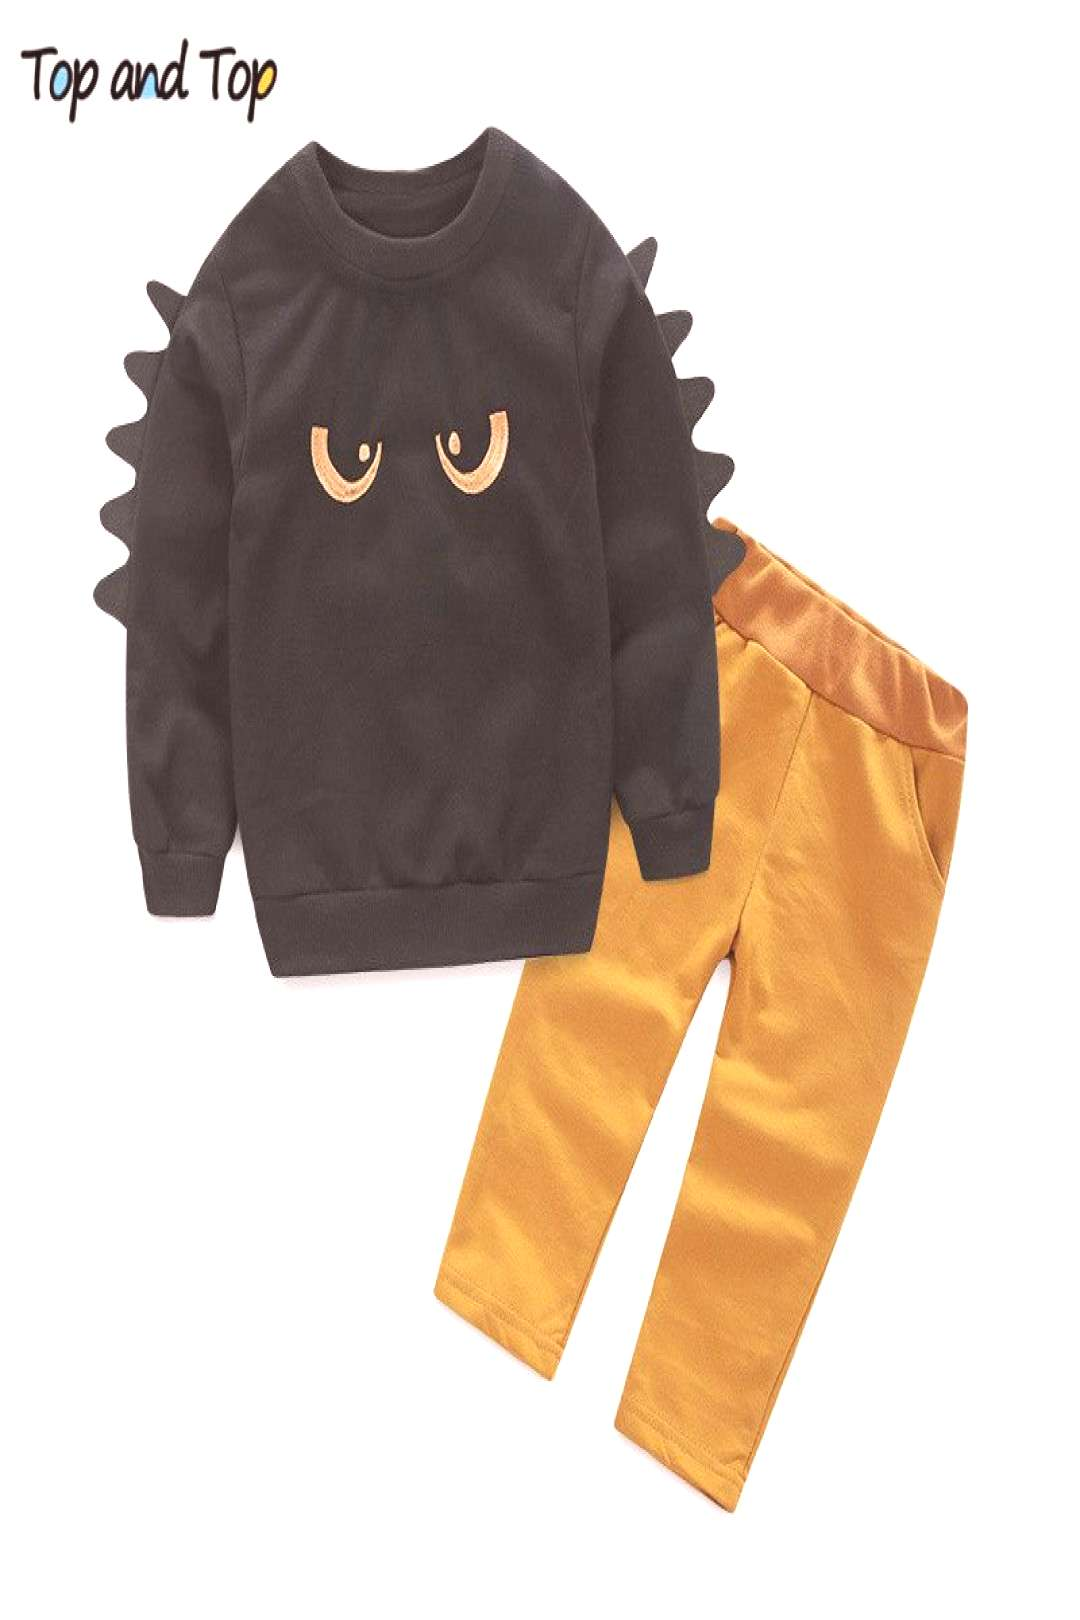 Kids Clothing Sets Long Sleeve T-Shirt + Pants, Autumn Spring Childrens Sports Suit Boys Clothes F